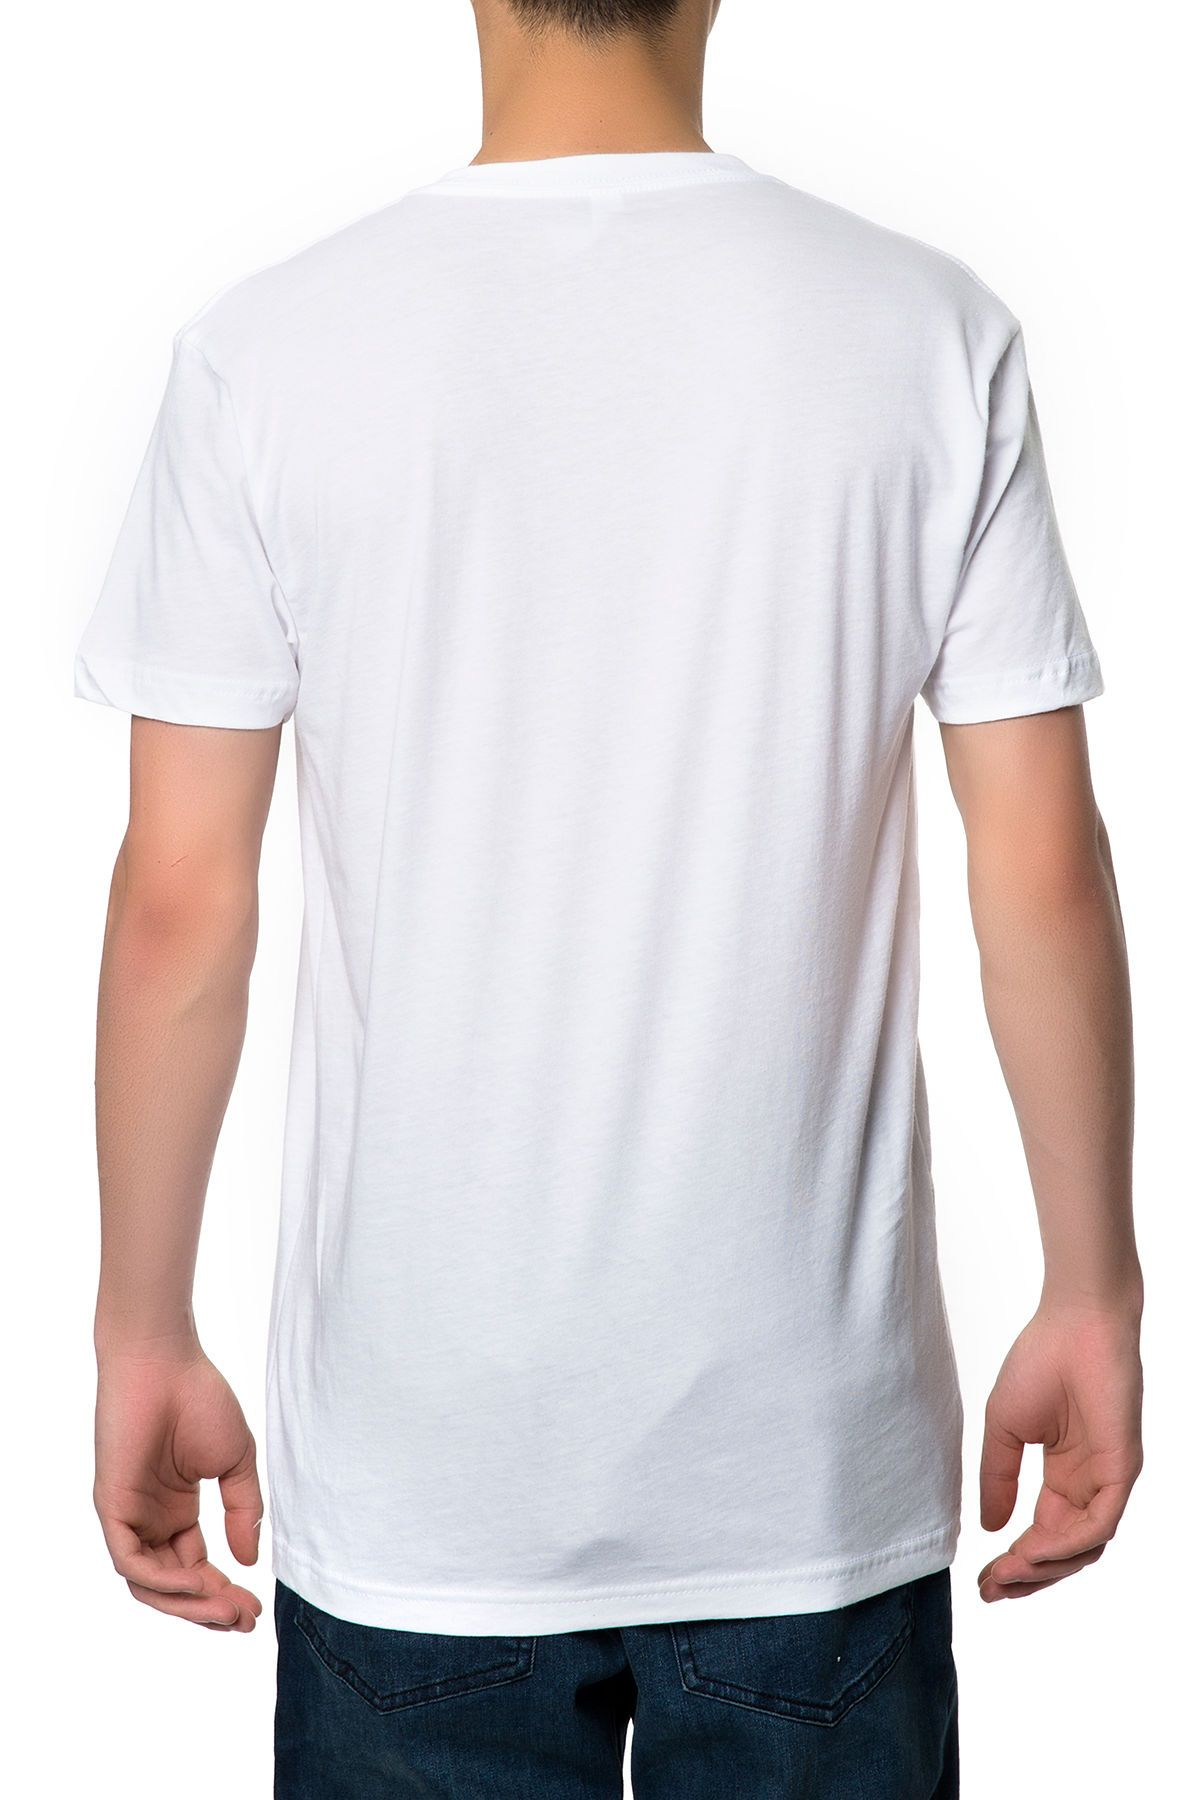 the basic vneck tee in white